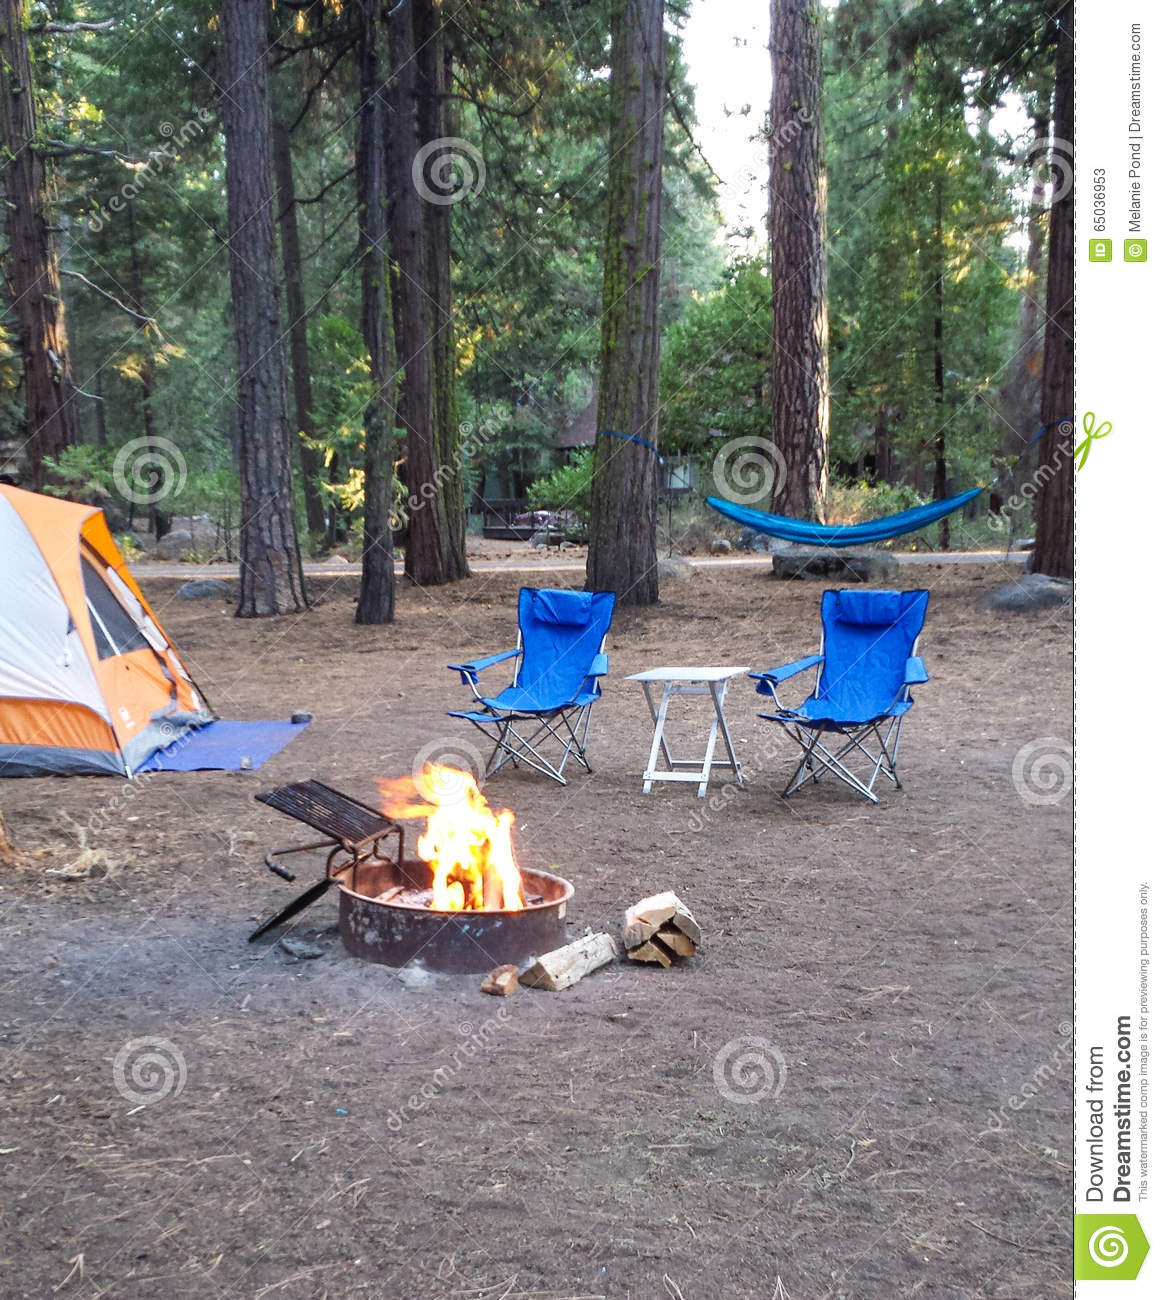 Download Campsite In The Woods With A Tent,two Chairs, Hammock And A Burning